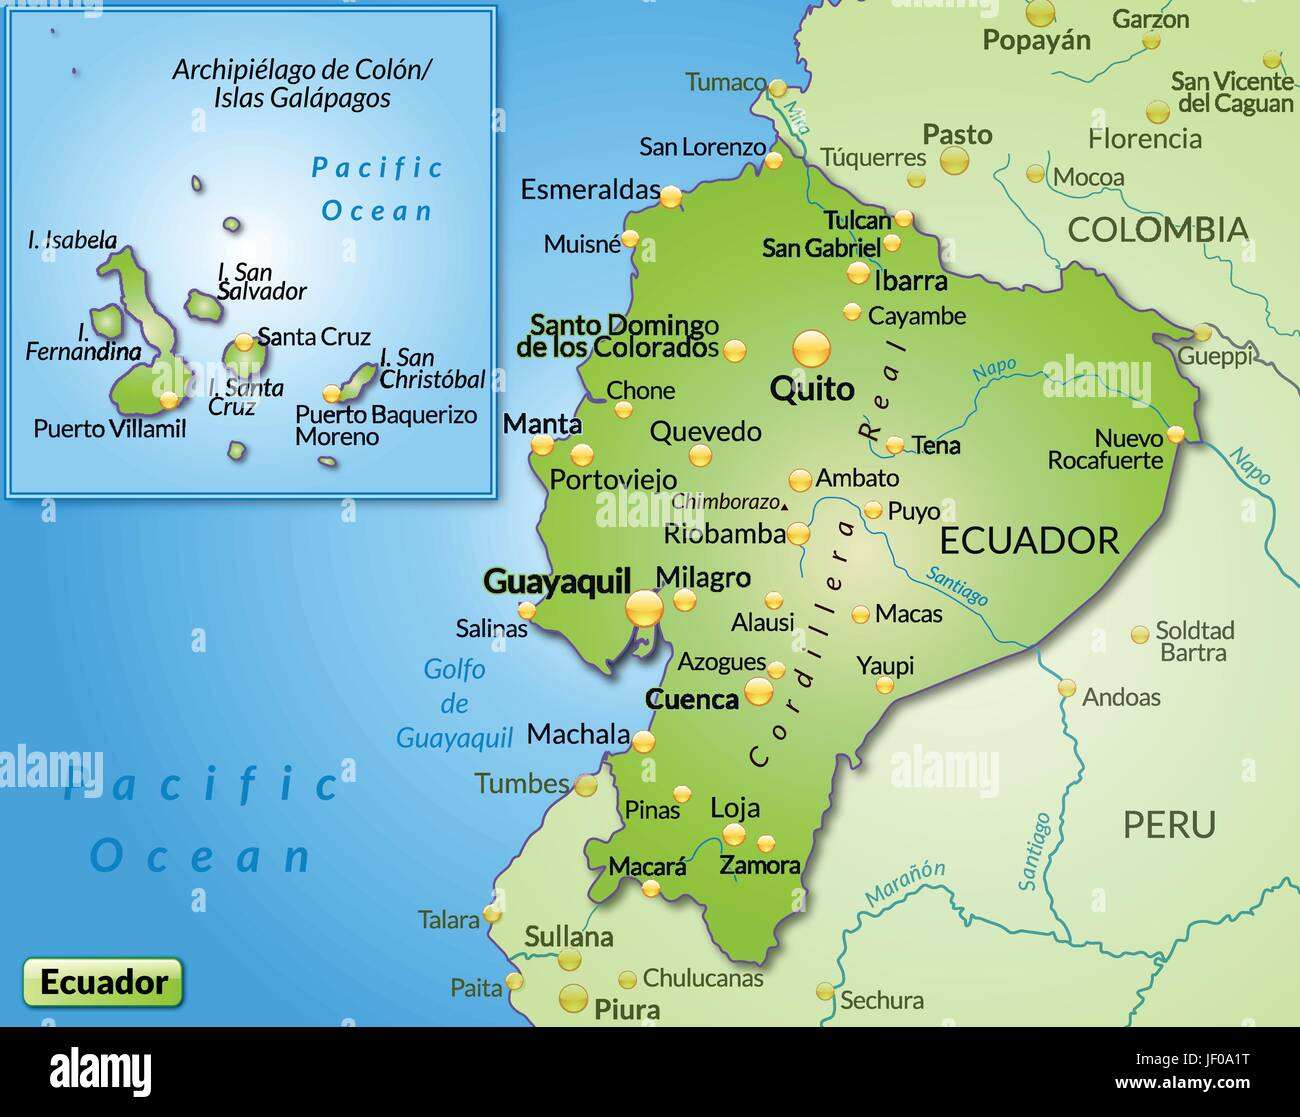 Ecuador In South America As A Map With All Important Topographical - Paita map